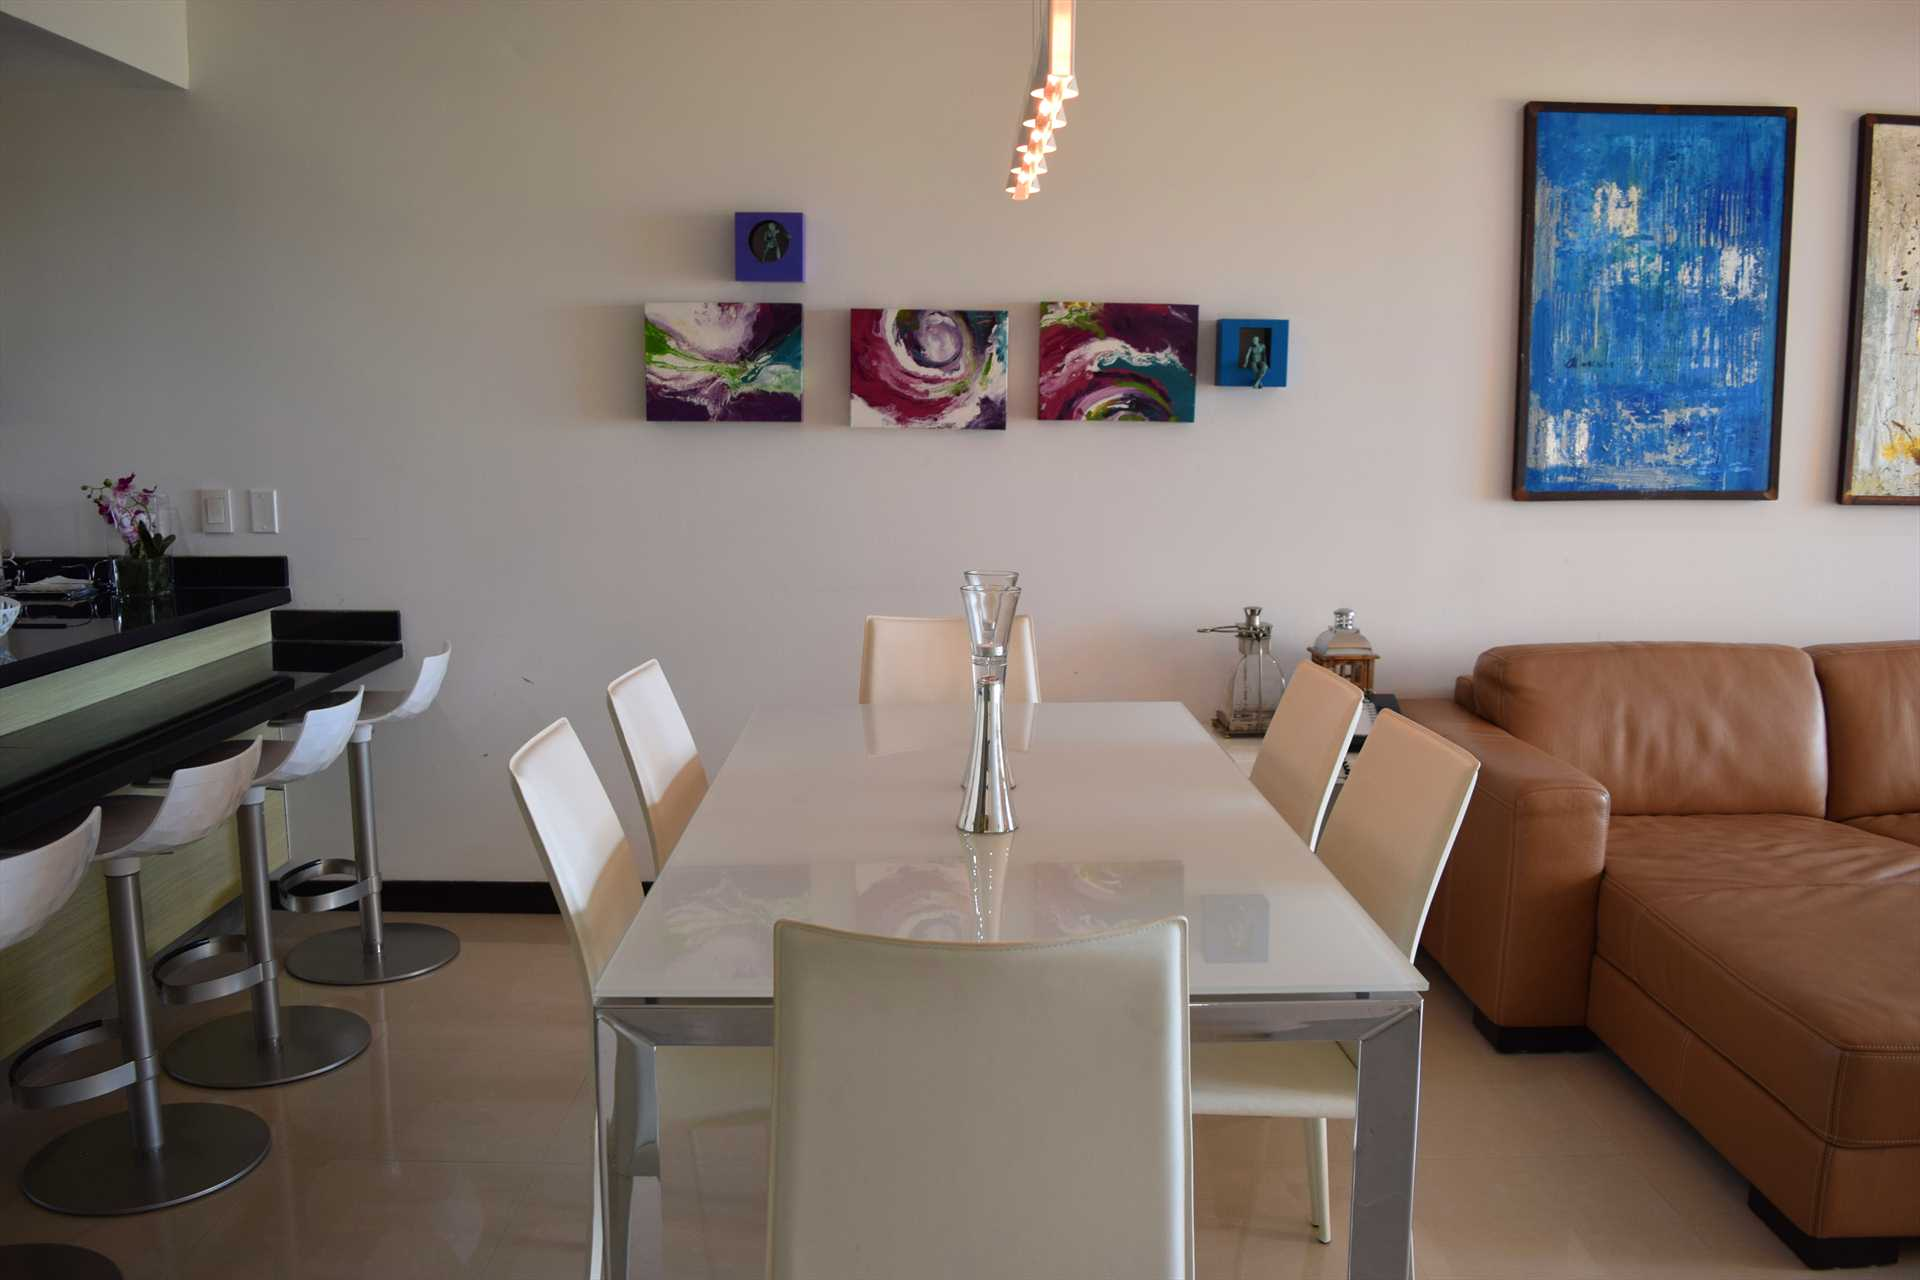 6-seat dinning table in the living area